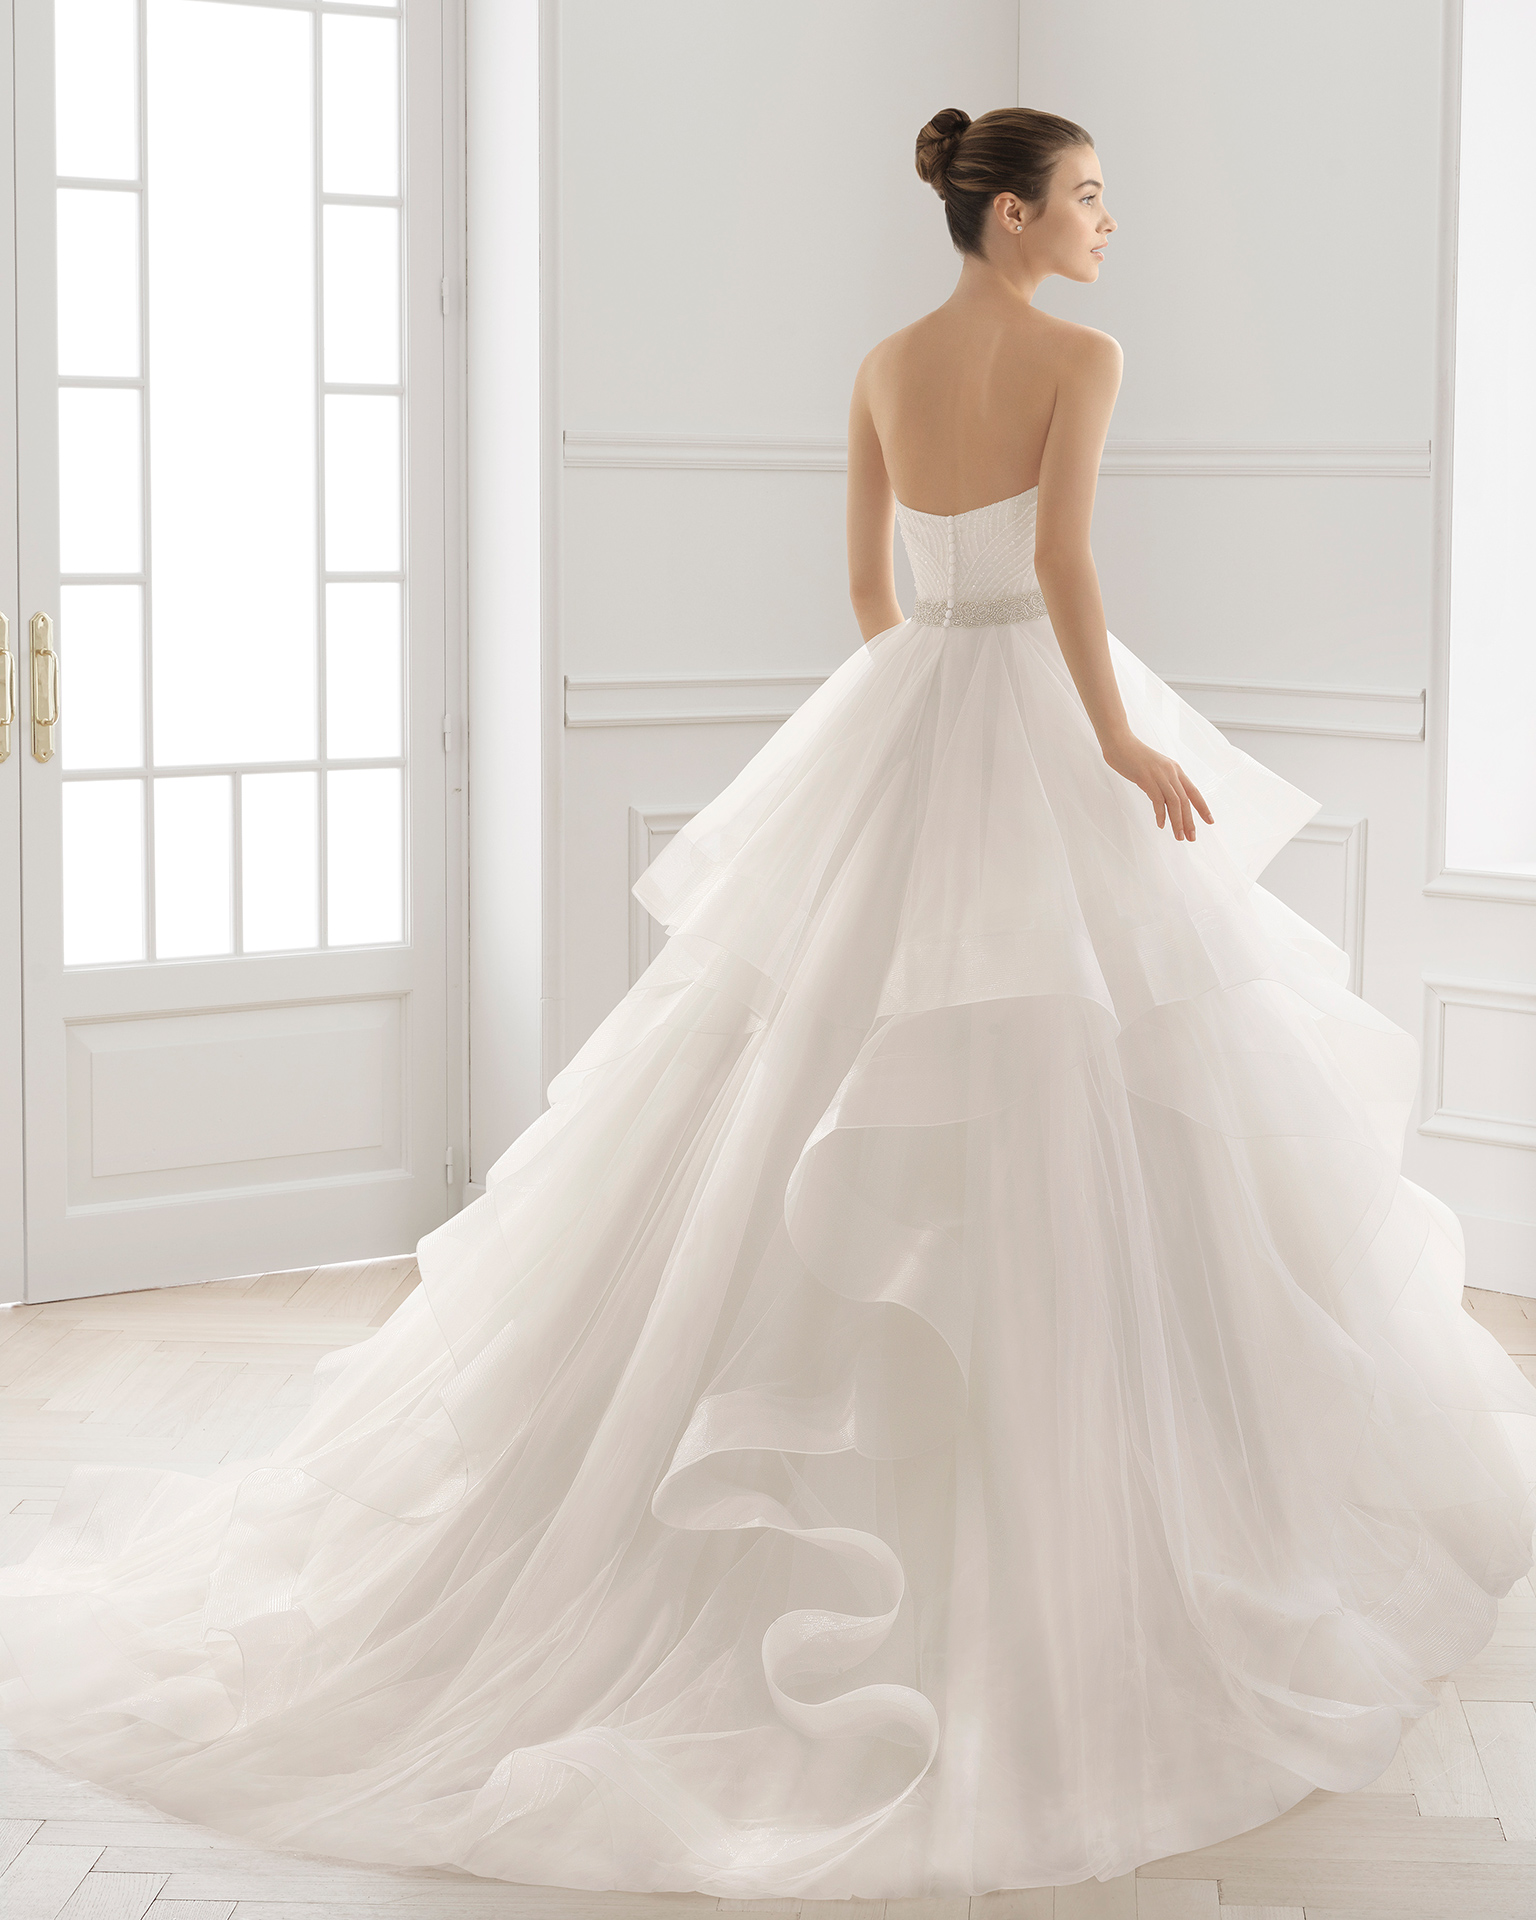 Ball-gown-style wedding dress with beaded embroidery bodice, semi-sweetheart neckline, flounced tulle skirt and natural waist, in natural.